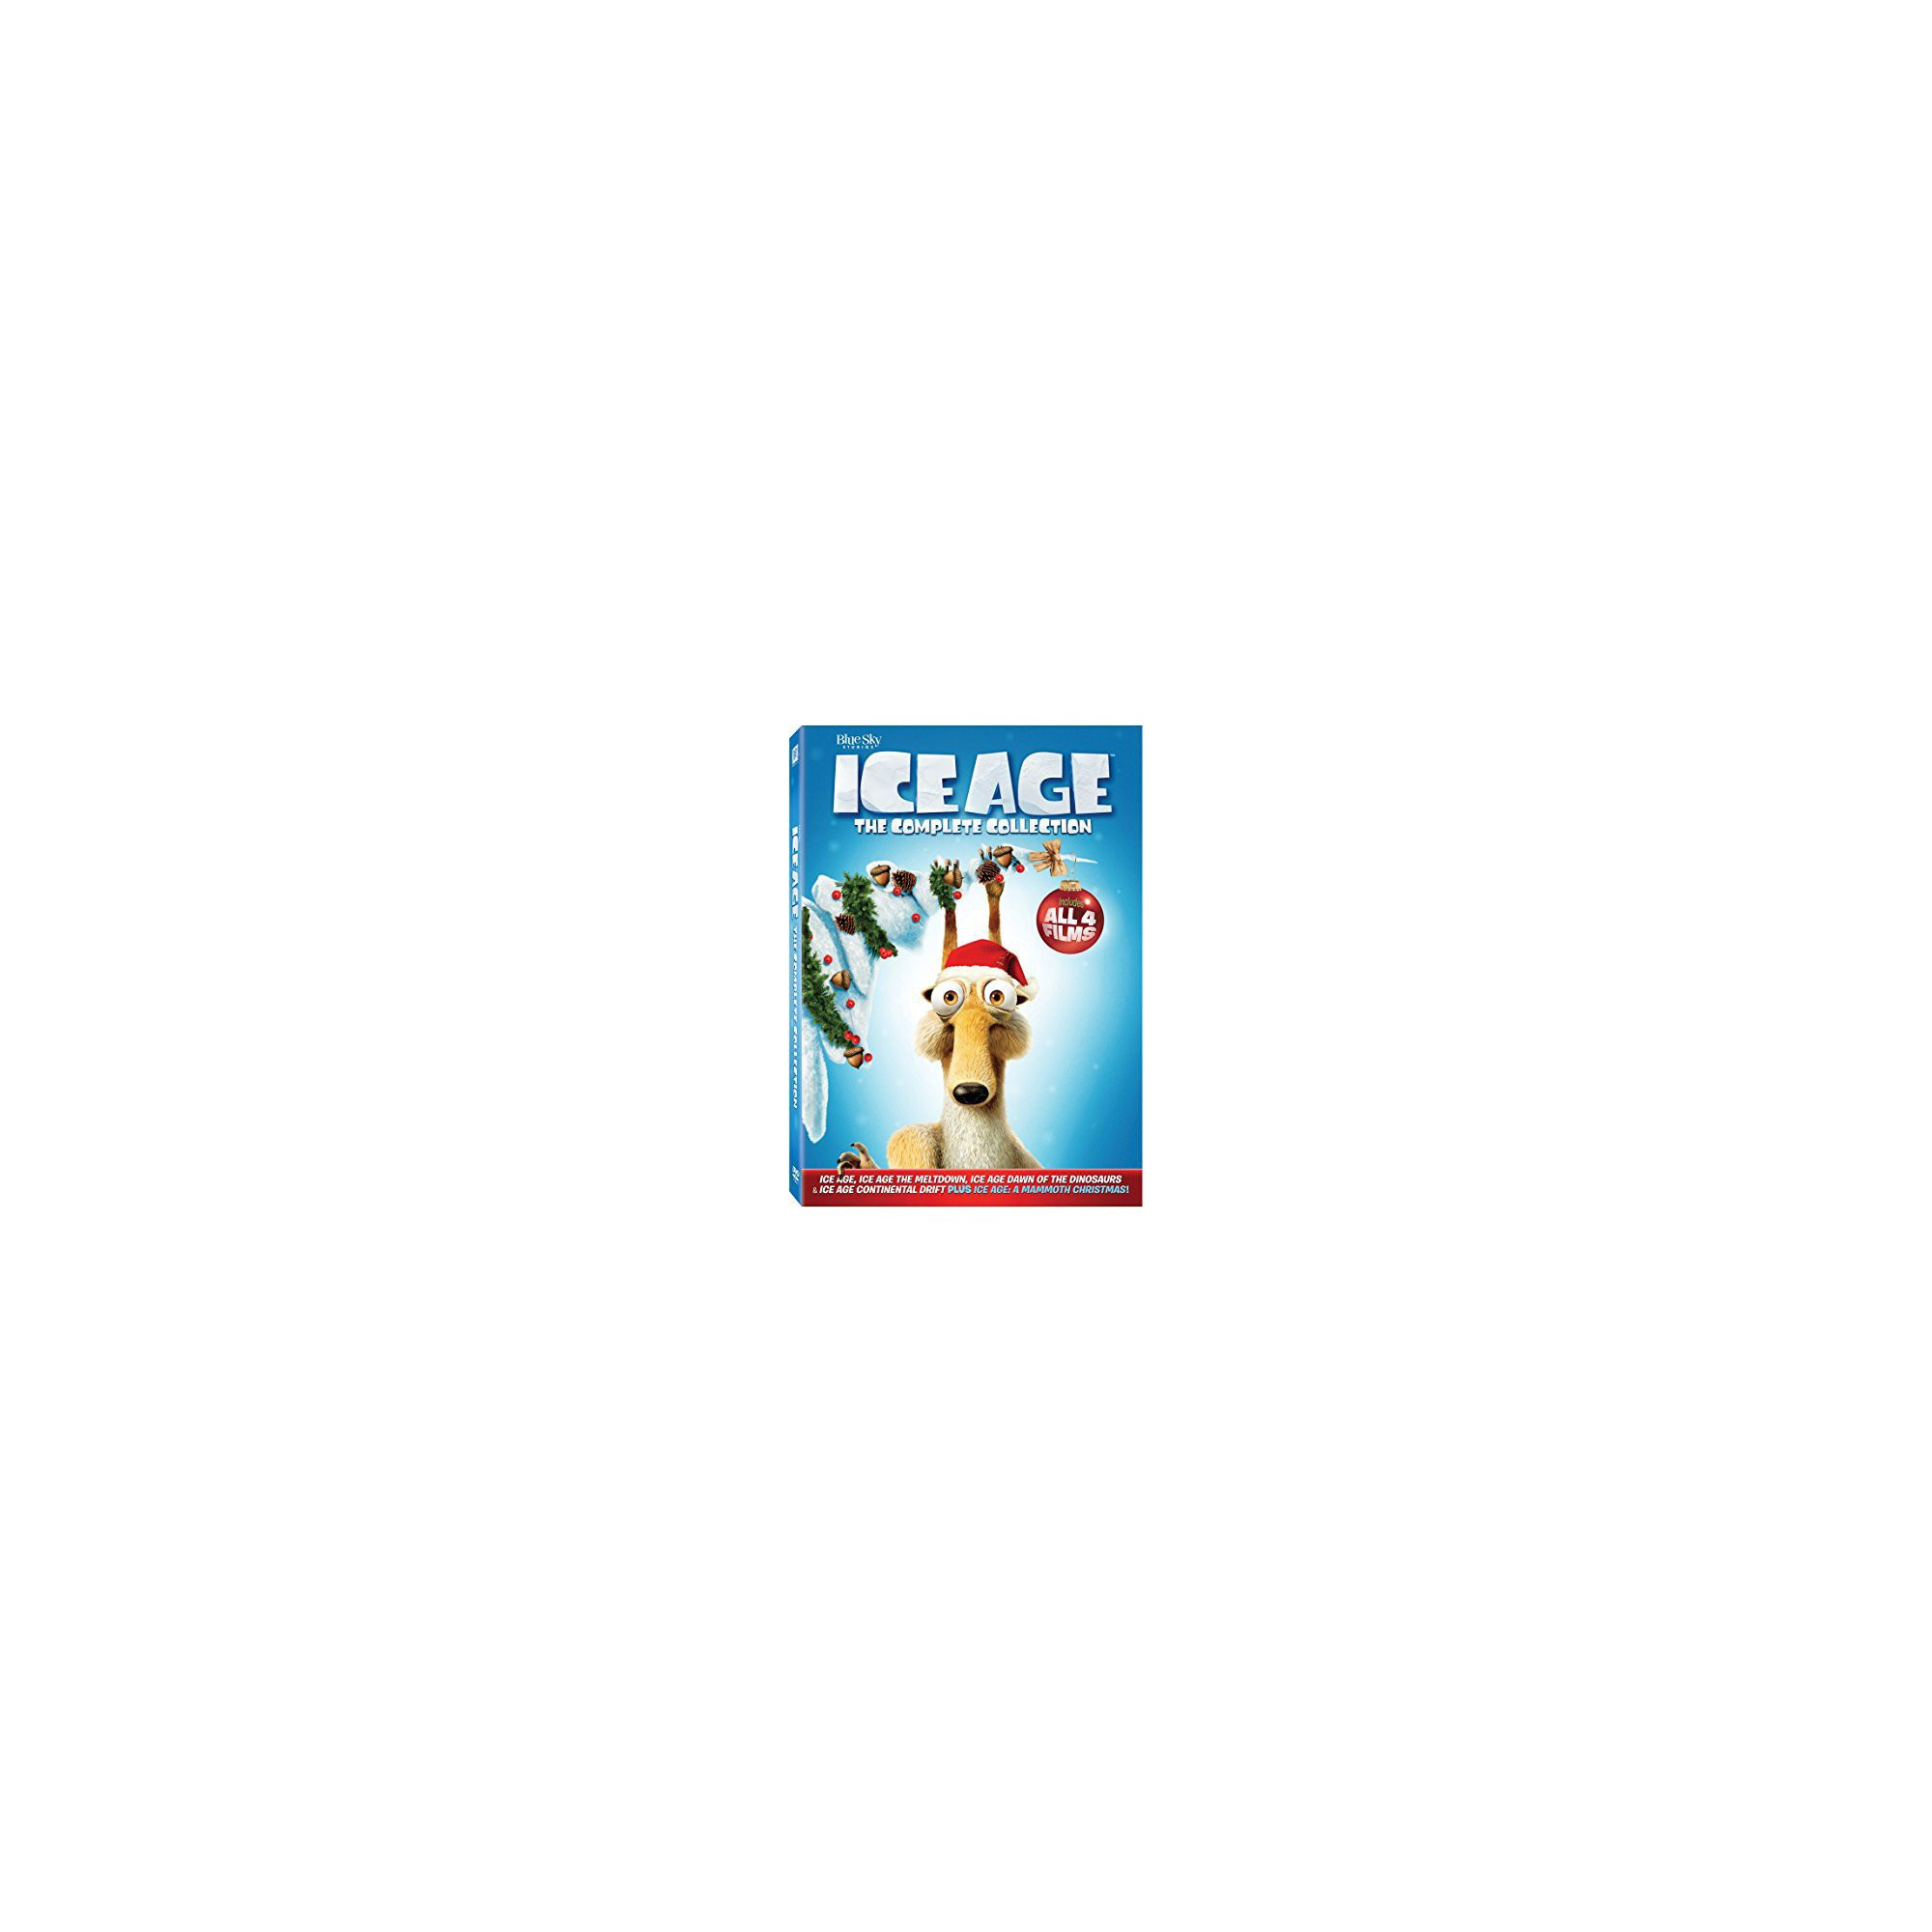 Ice age:Complete collection (Dvd) | Products | Pinterest | Ice age ...